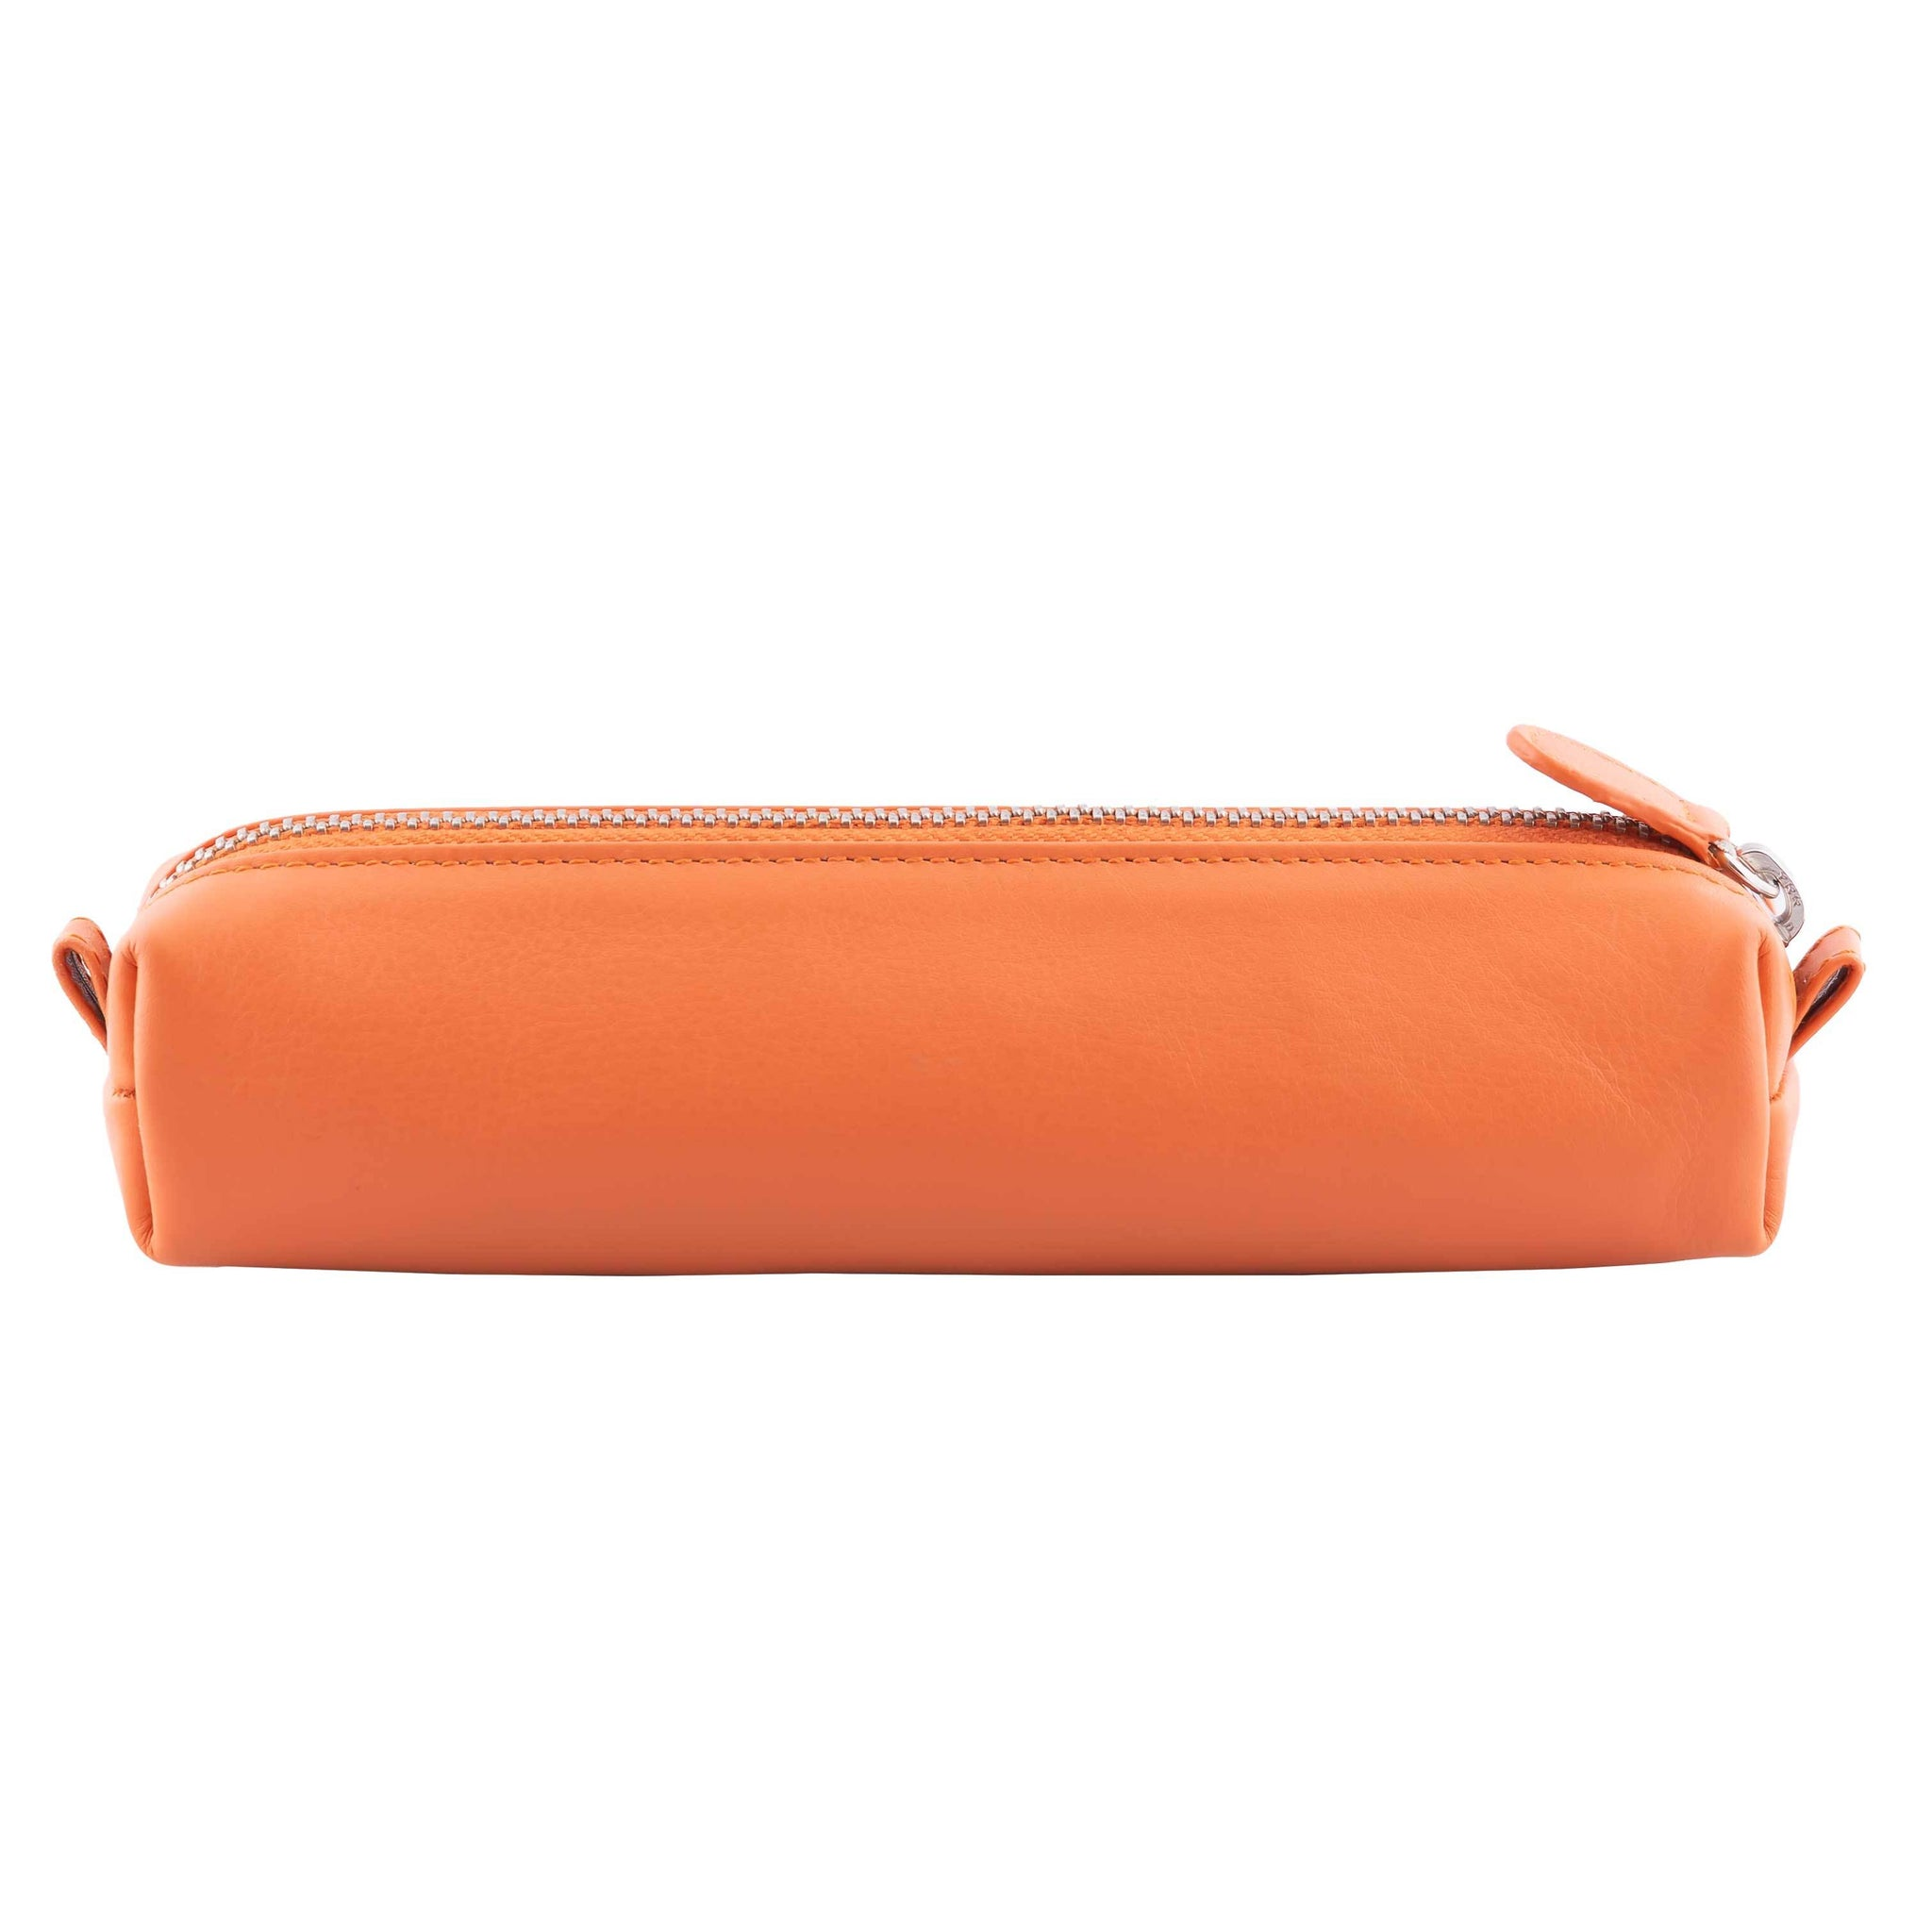 Multi-Purpose Zippered Leather Pen Pencil Case in Various Colors - Orange